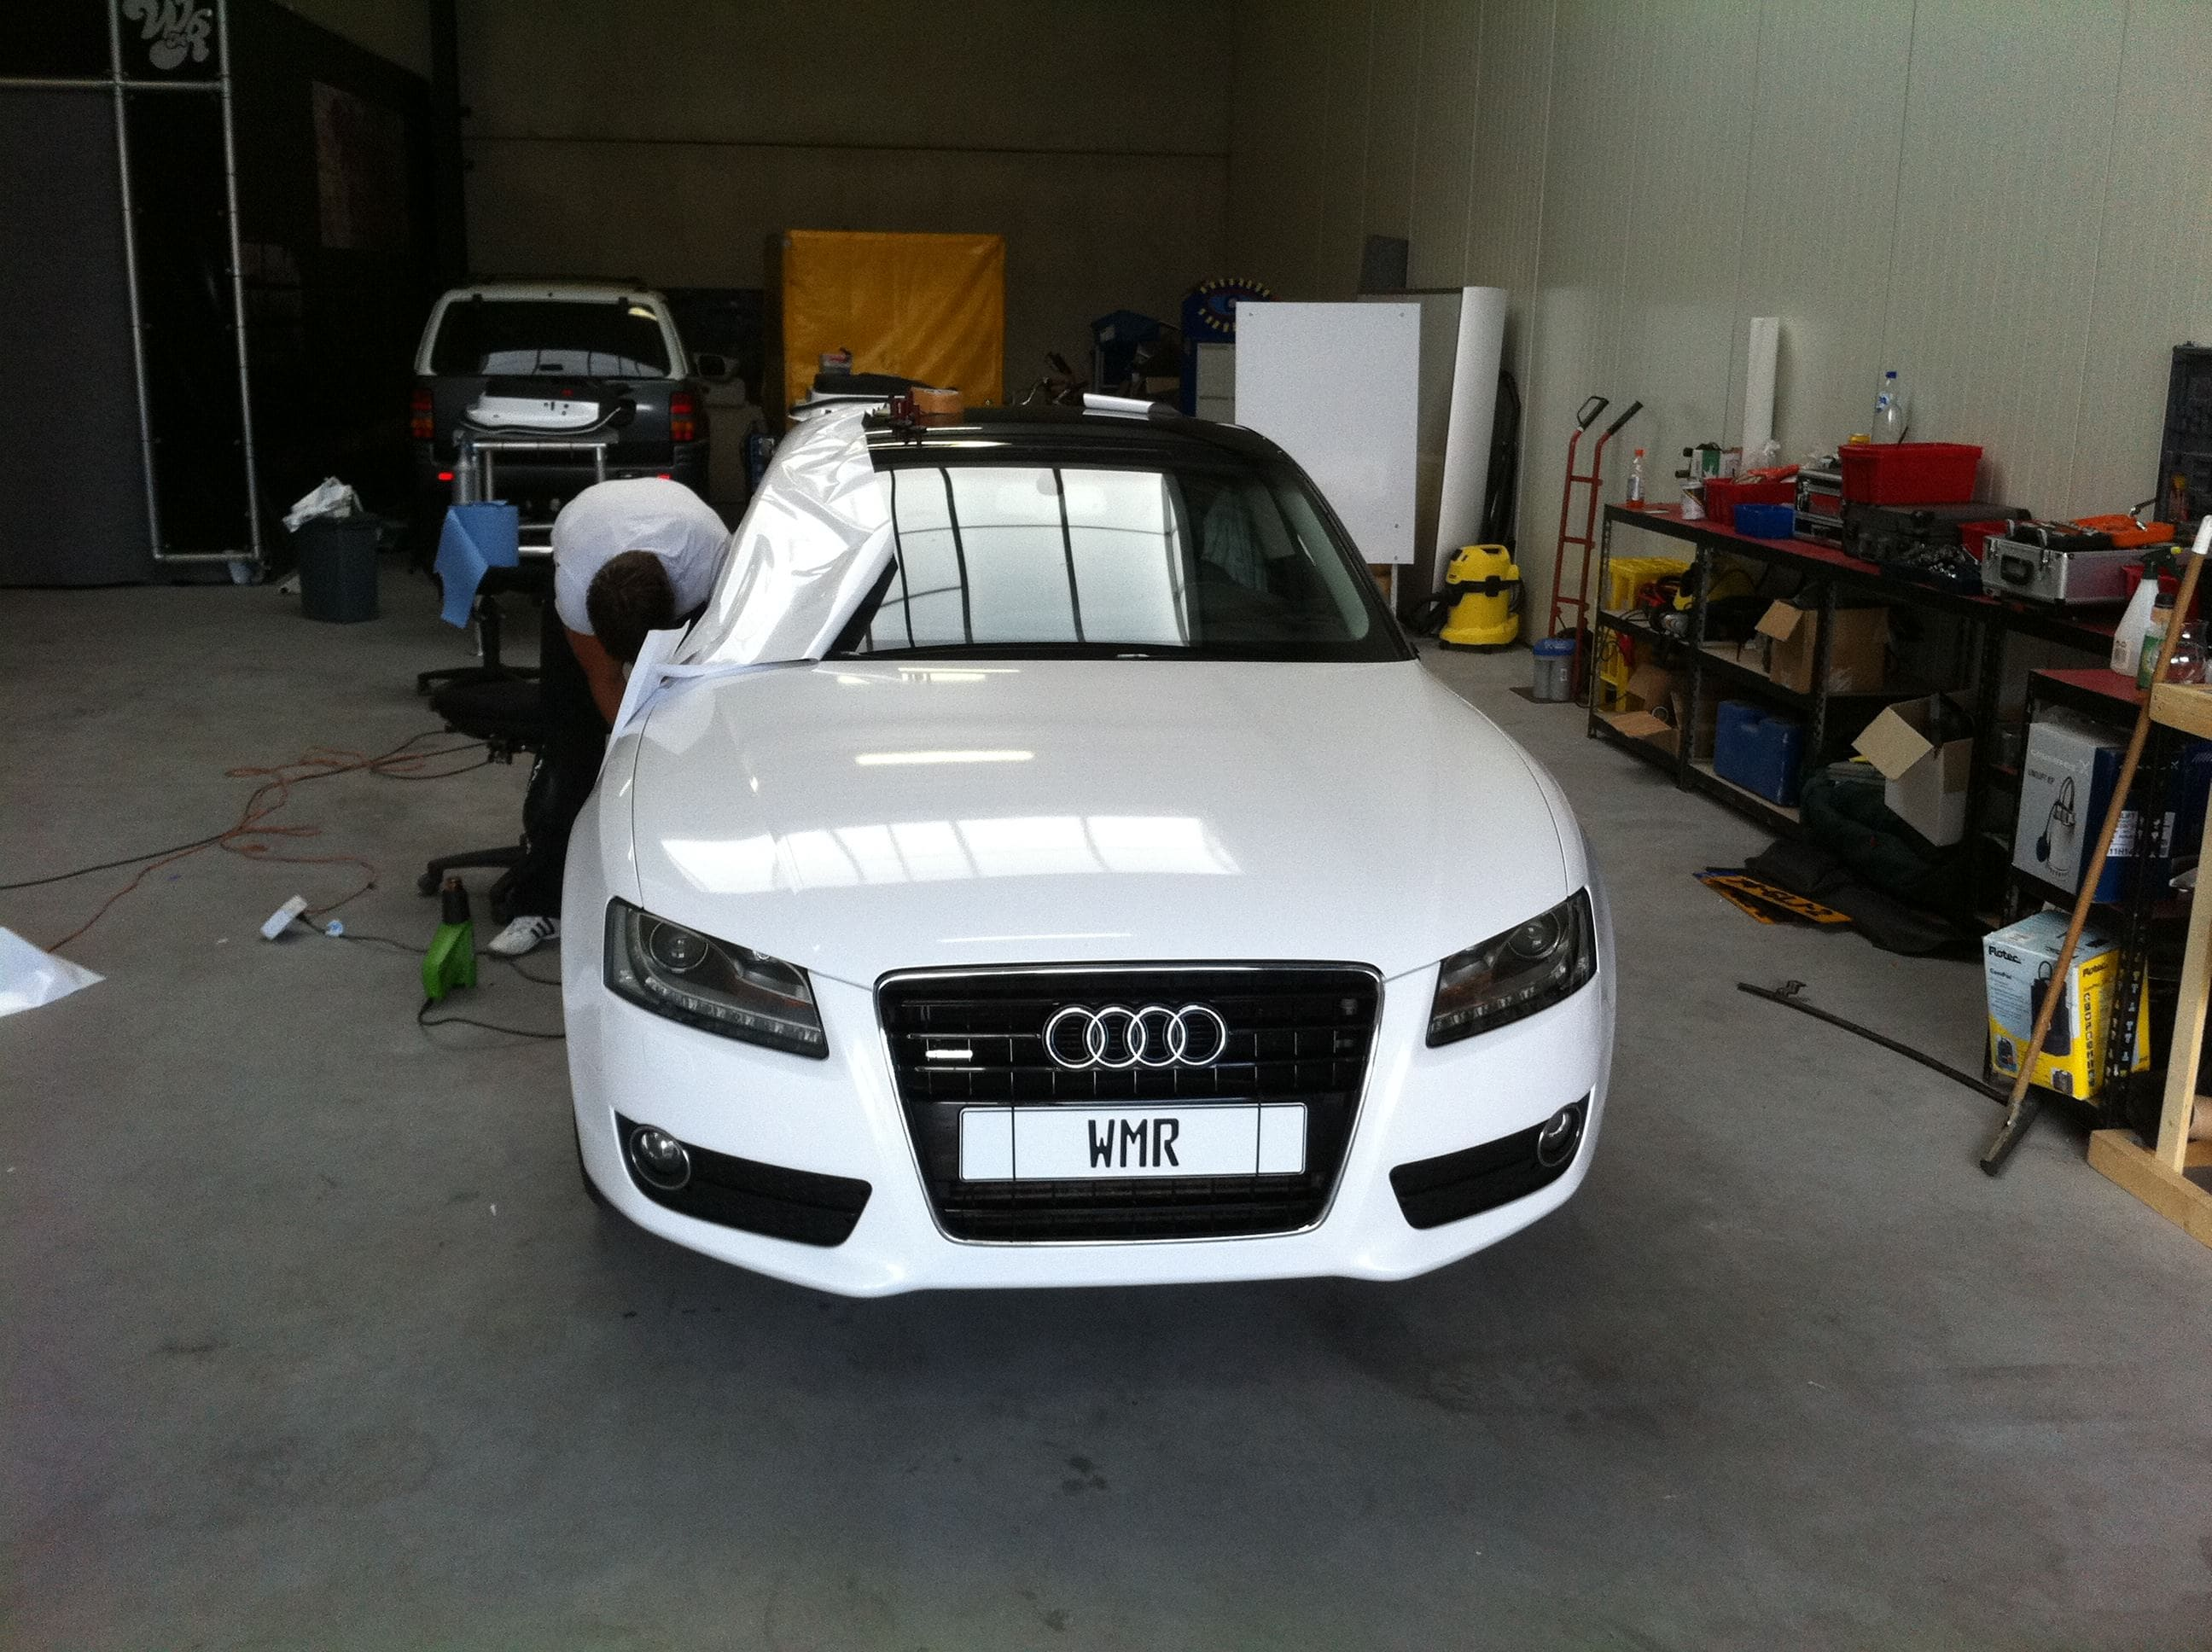 Audi A5 coupe met Metallic Witte Wrap, Carwrapping door Wrapmyride.nu Foto-nr:4663, ©2020